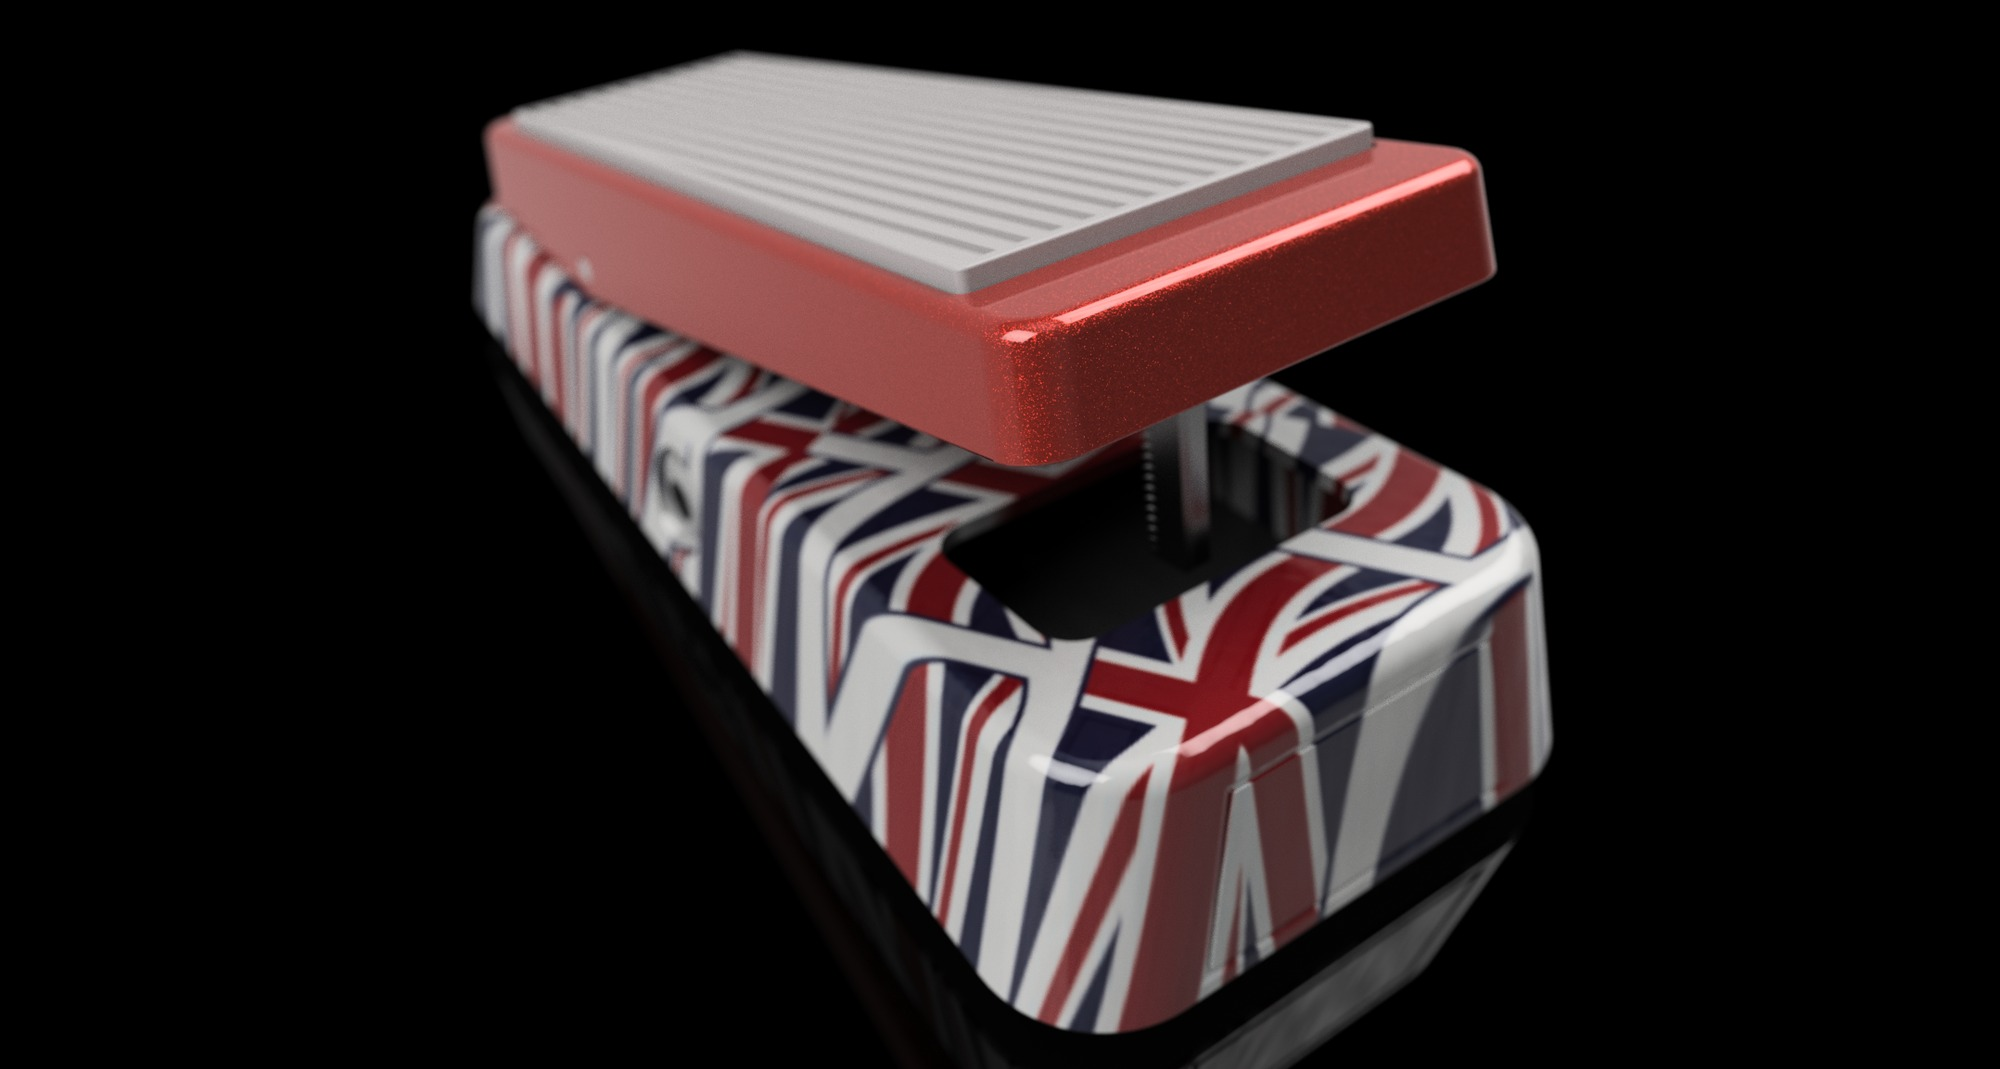 Union_jack_wah_2015-may-12_03-25-44pm-000_customizedview18430285